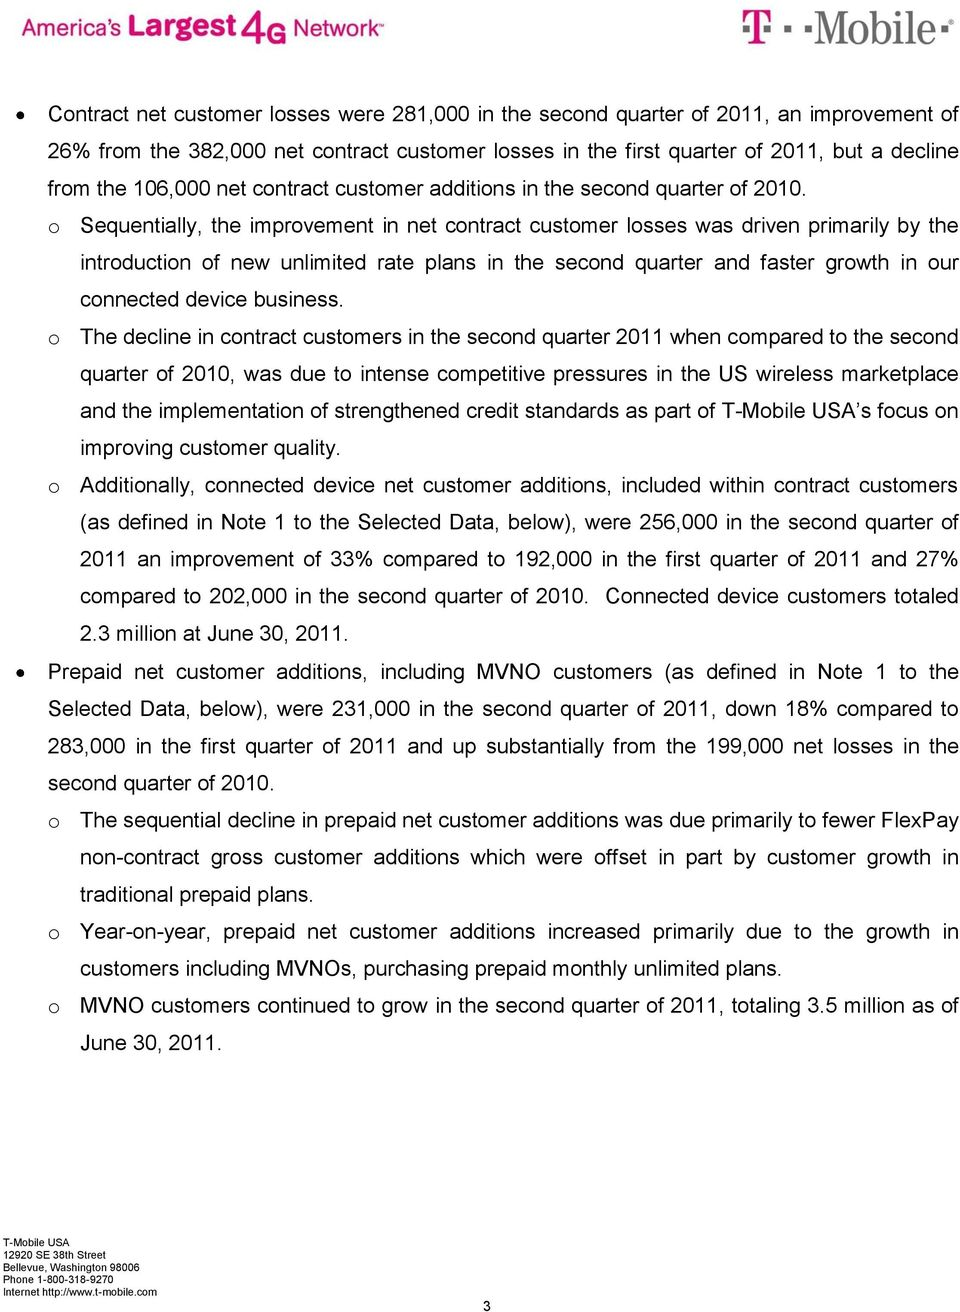 o Sequentially, the improvement in net contract customer losses was driven primarily by the introduction of new unlimited rate plans in the second quarter and faster growth in our connected device